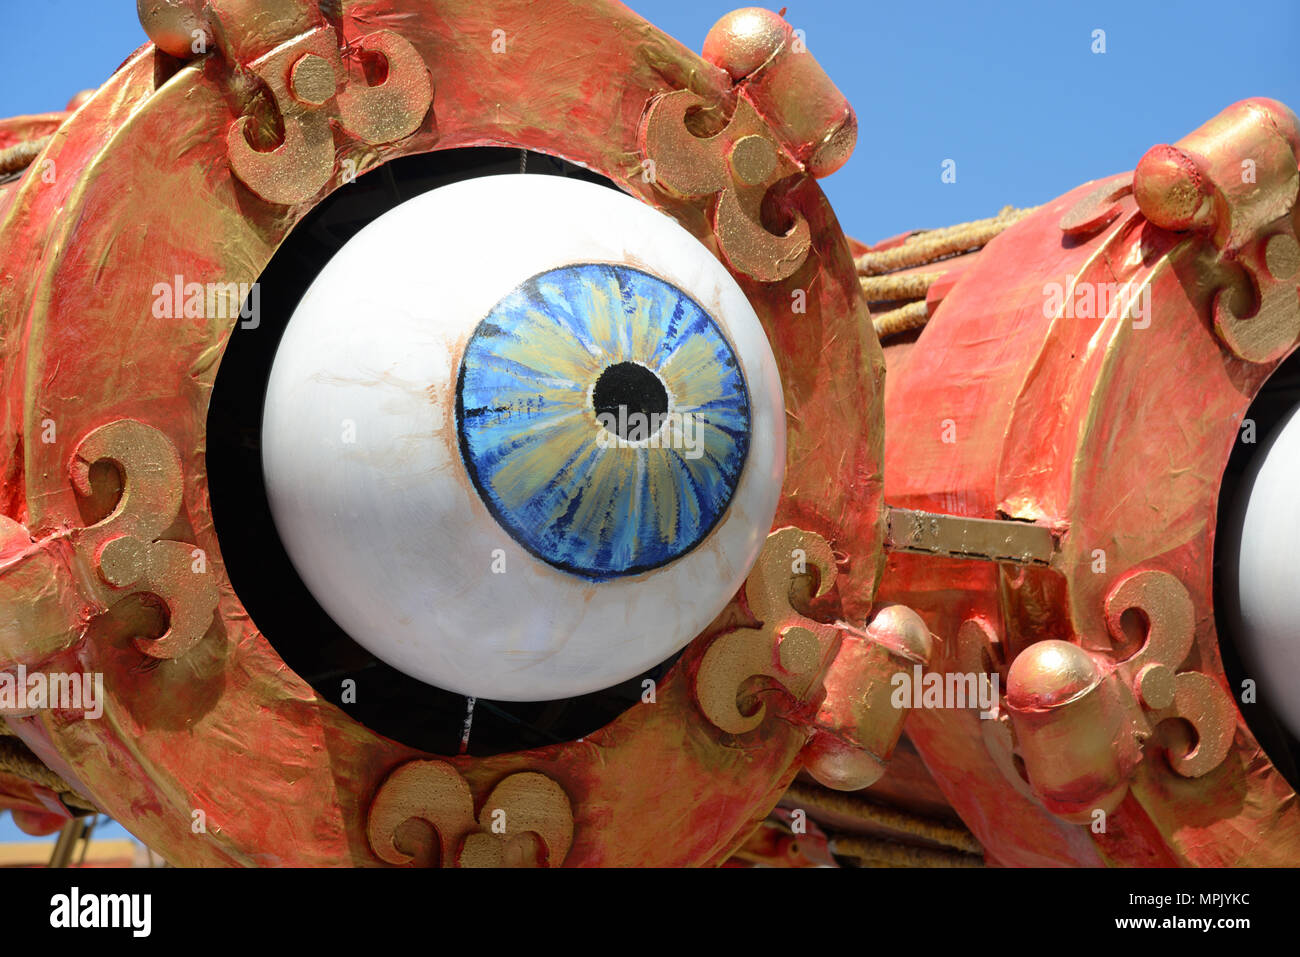 Giant Blue Eye or Eyeball on  Carnival Float During the Annual Spring Carnival Aix-en-Provence Provence France - Stock Image